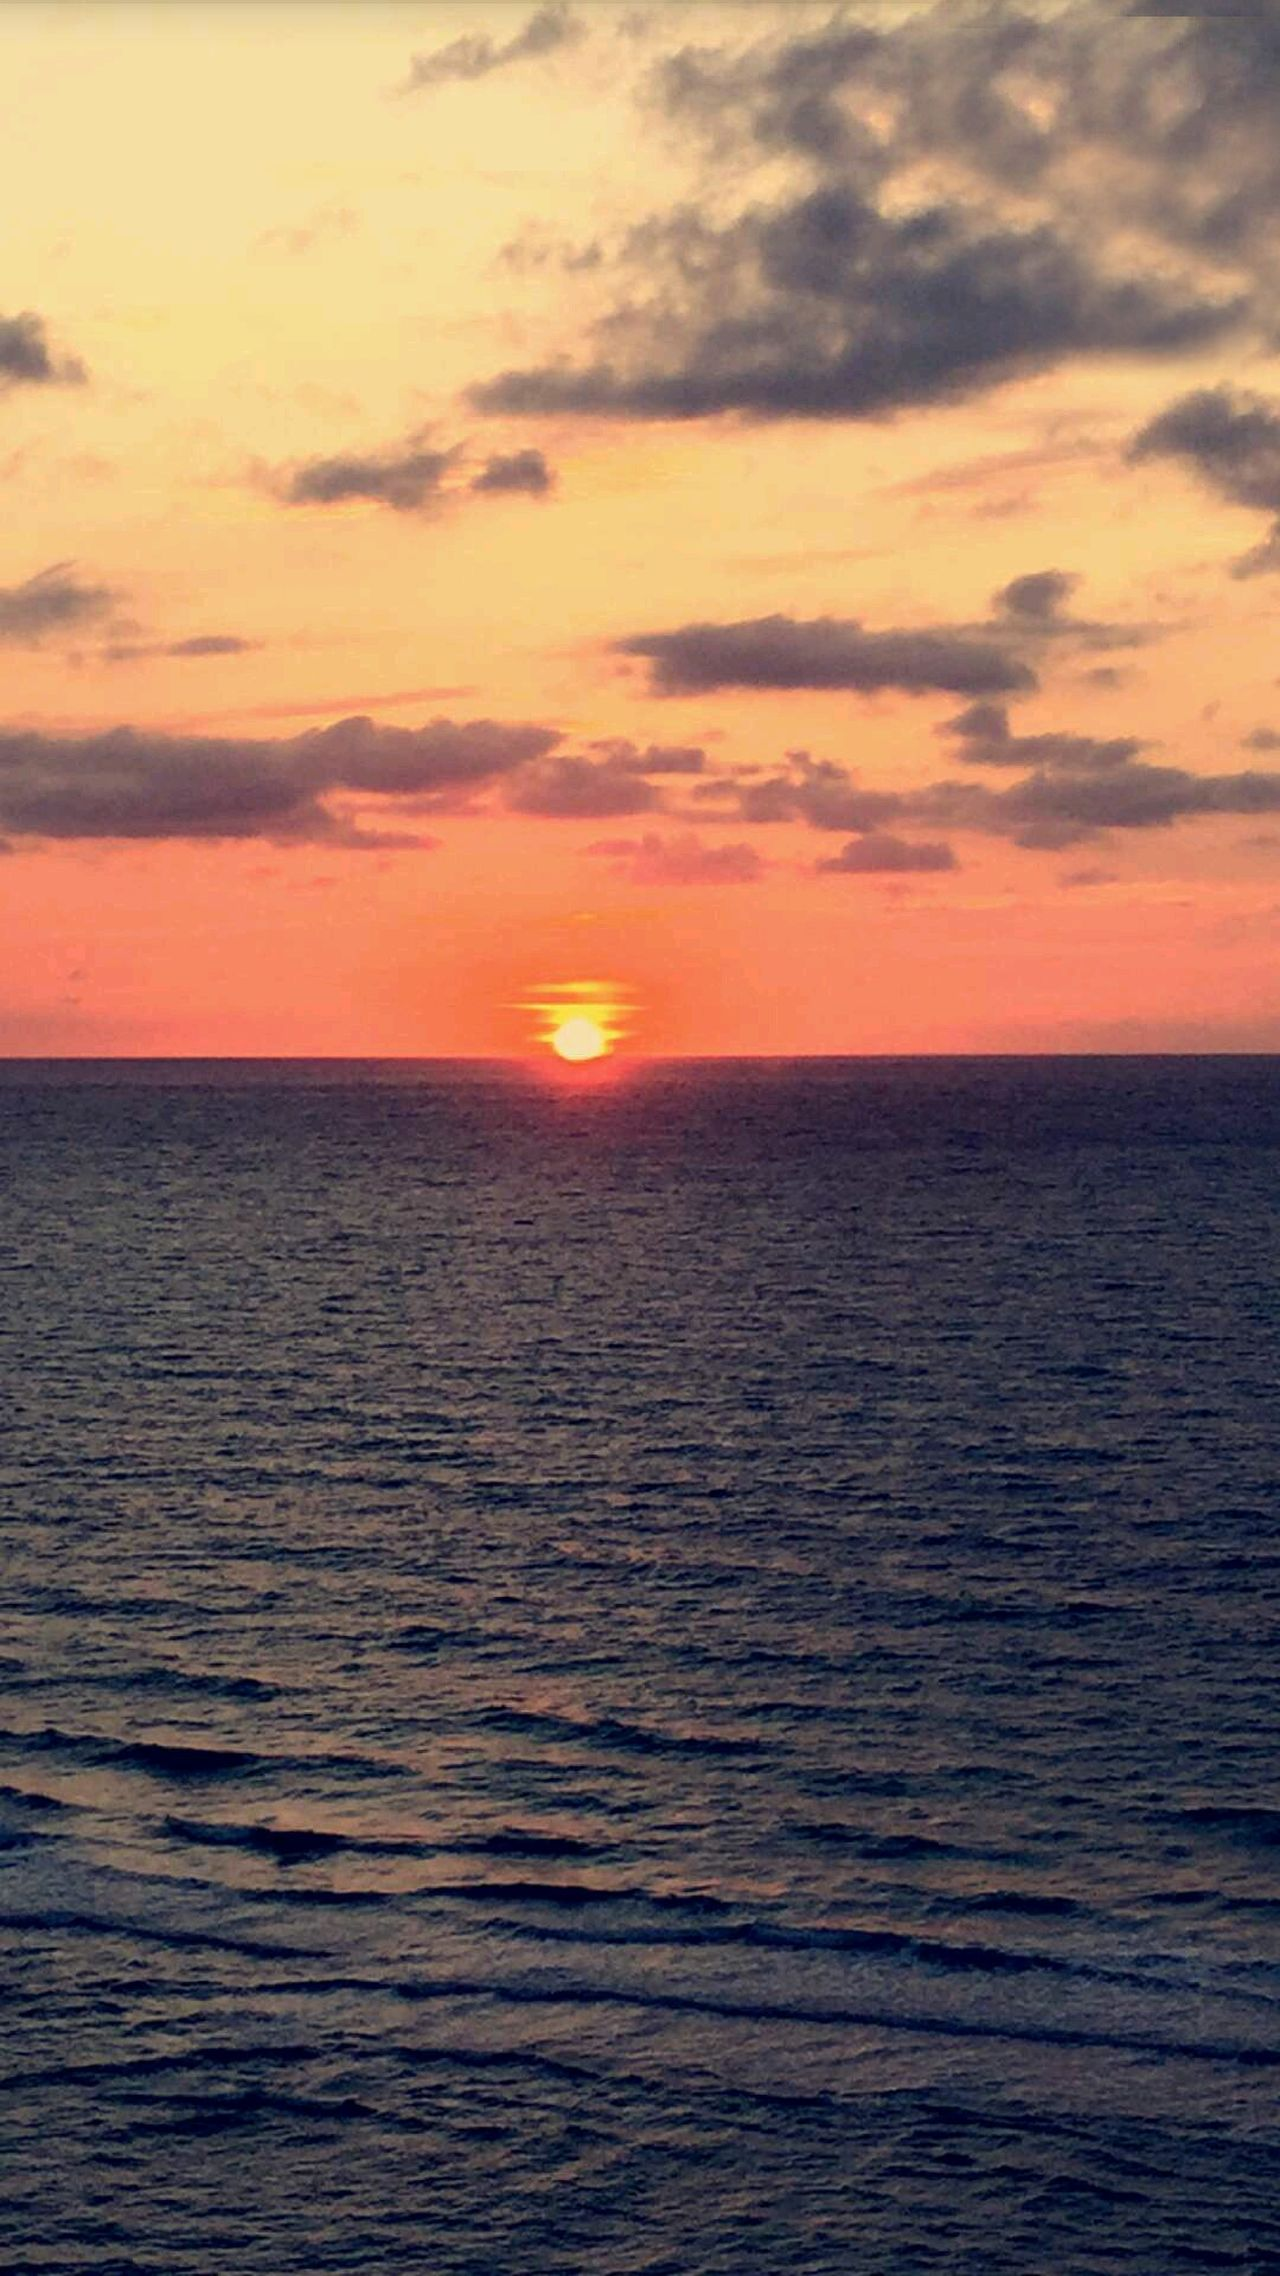 Sunset Sea Horizon Over Water Dramatic Sky Tranquility Sun Scenics Romantic Sky Beauty In Nature Sky No People Outdoors Cloud - Sky Nature Landscape Day Sol Horizon Tranquility Nofilter Pôr Do Sol 🌅 Por Do Sol ⛅ Presidenteepitacio Beauty In Nature Nature